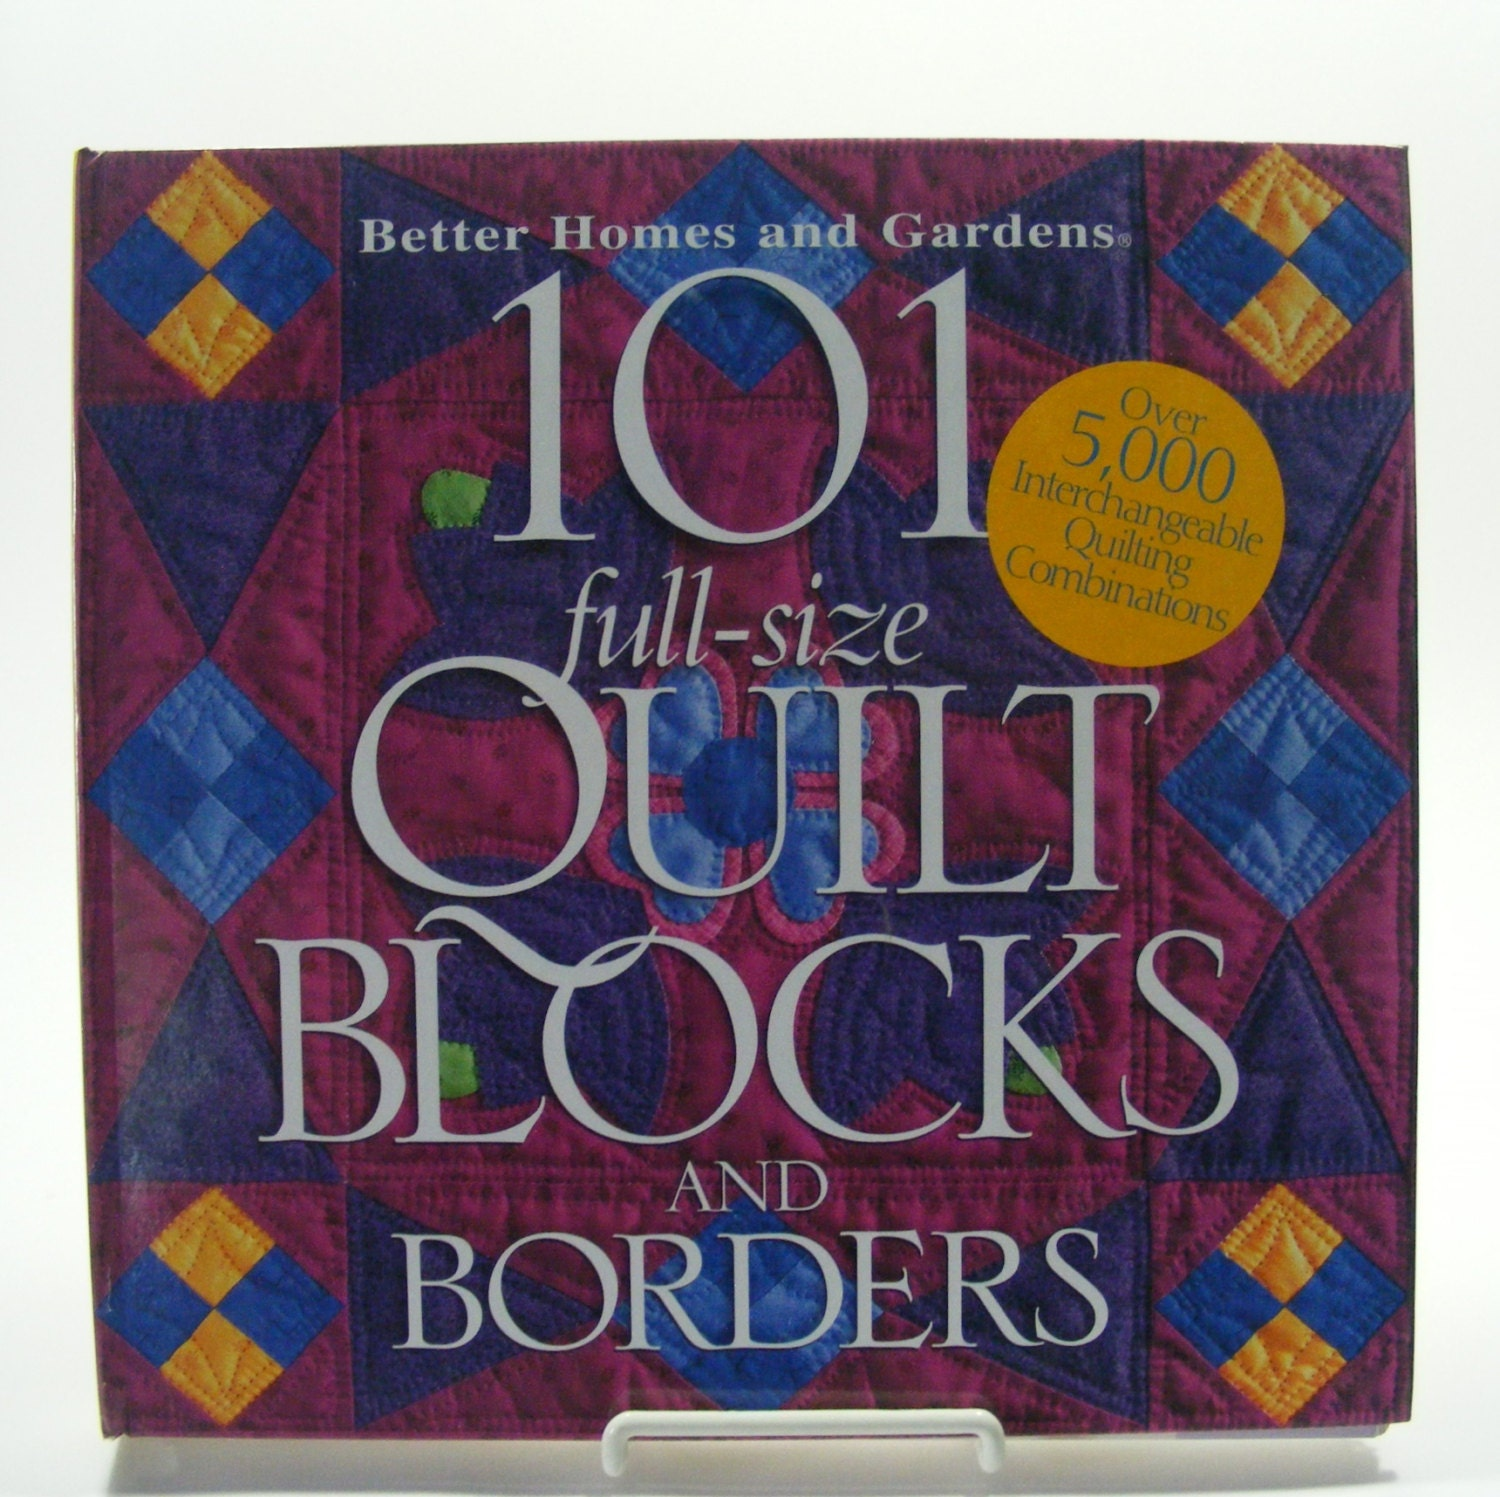 101 Full Size Quilt Blocks And Borders From Better Homes And